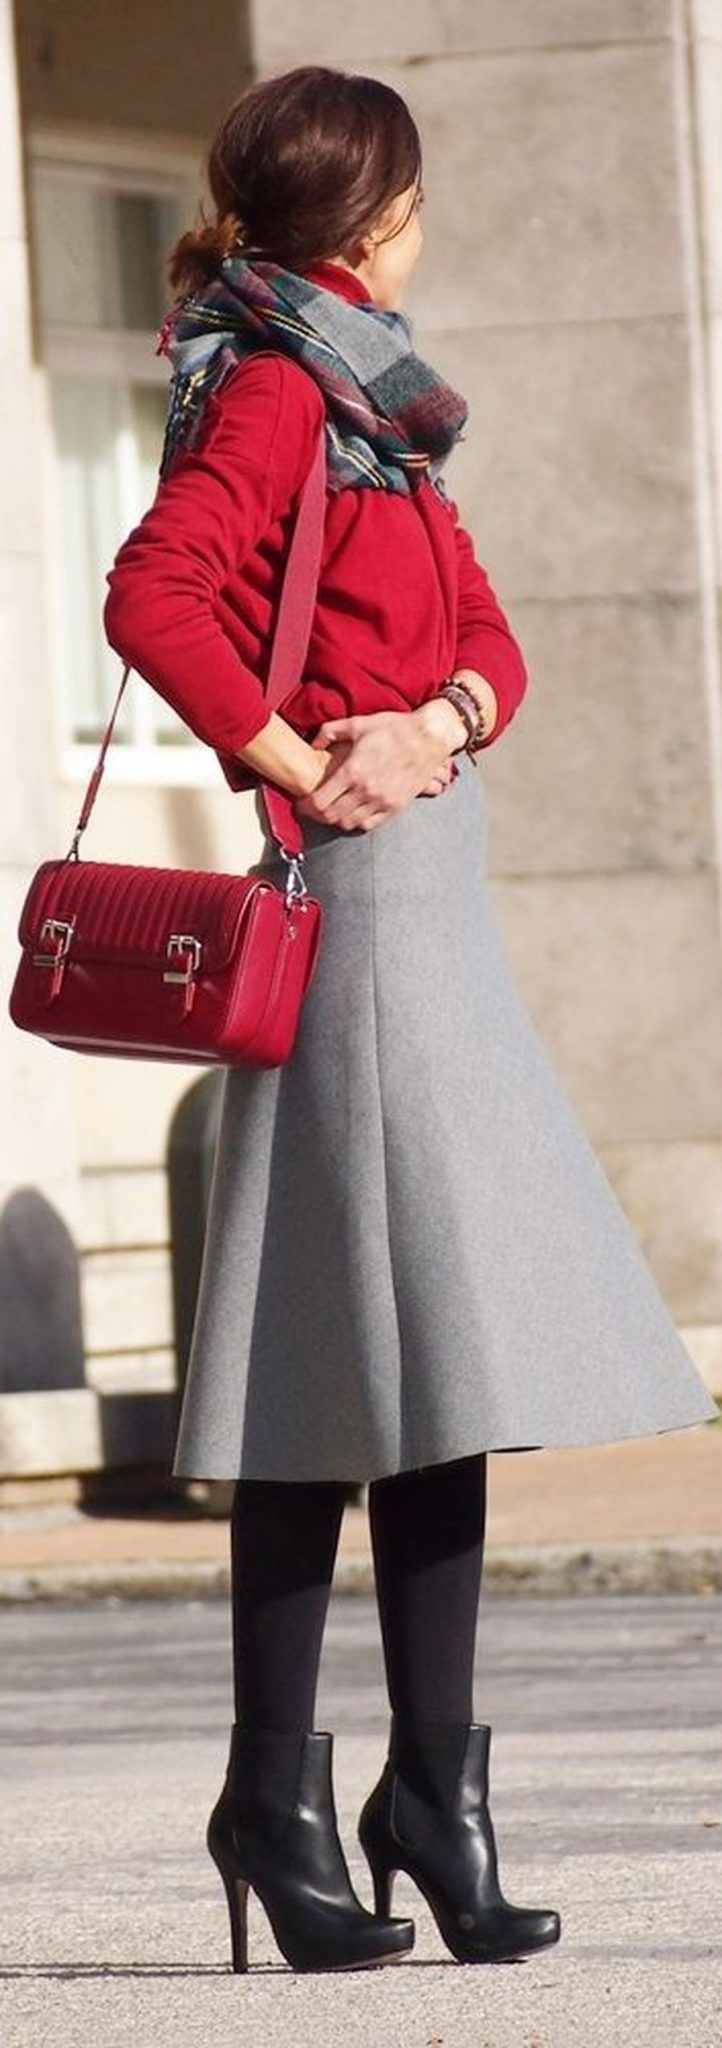 Inspiring skirt and boots combinations for fall and winter outfits 38